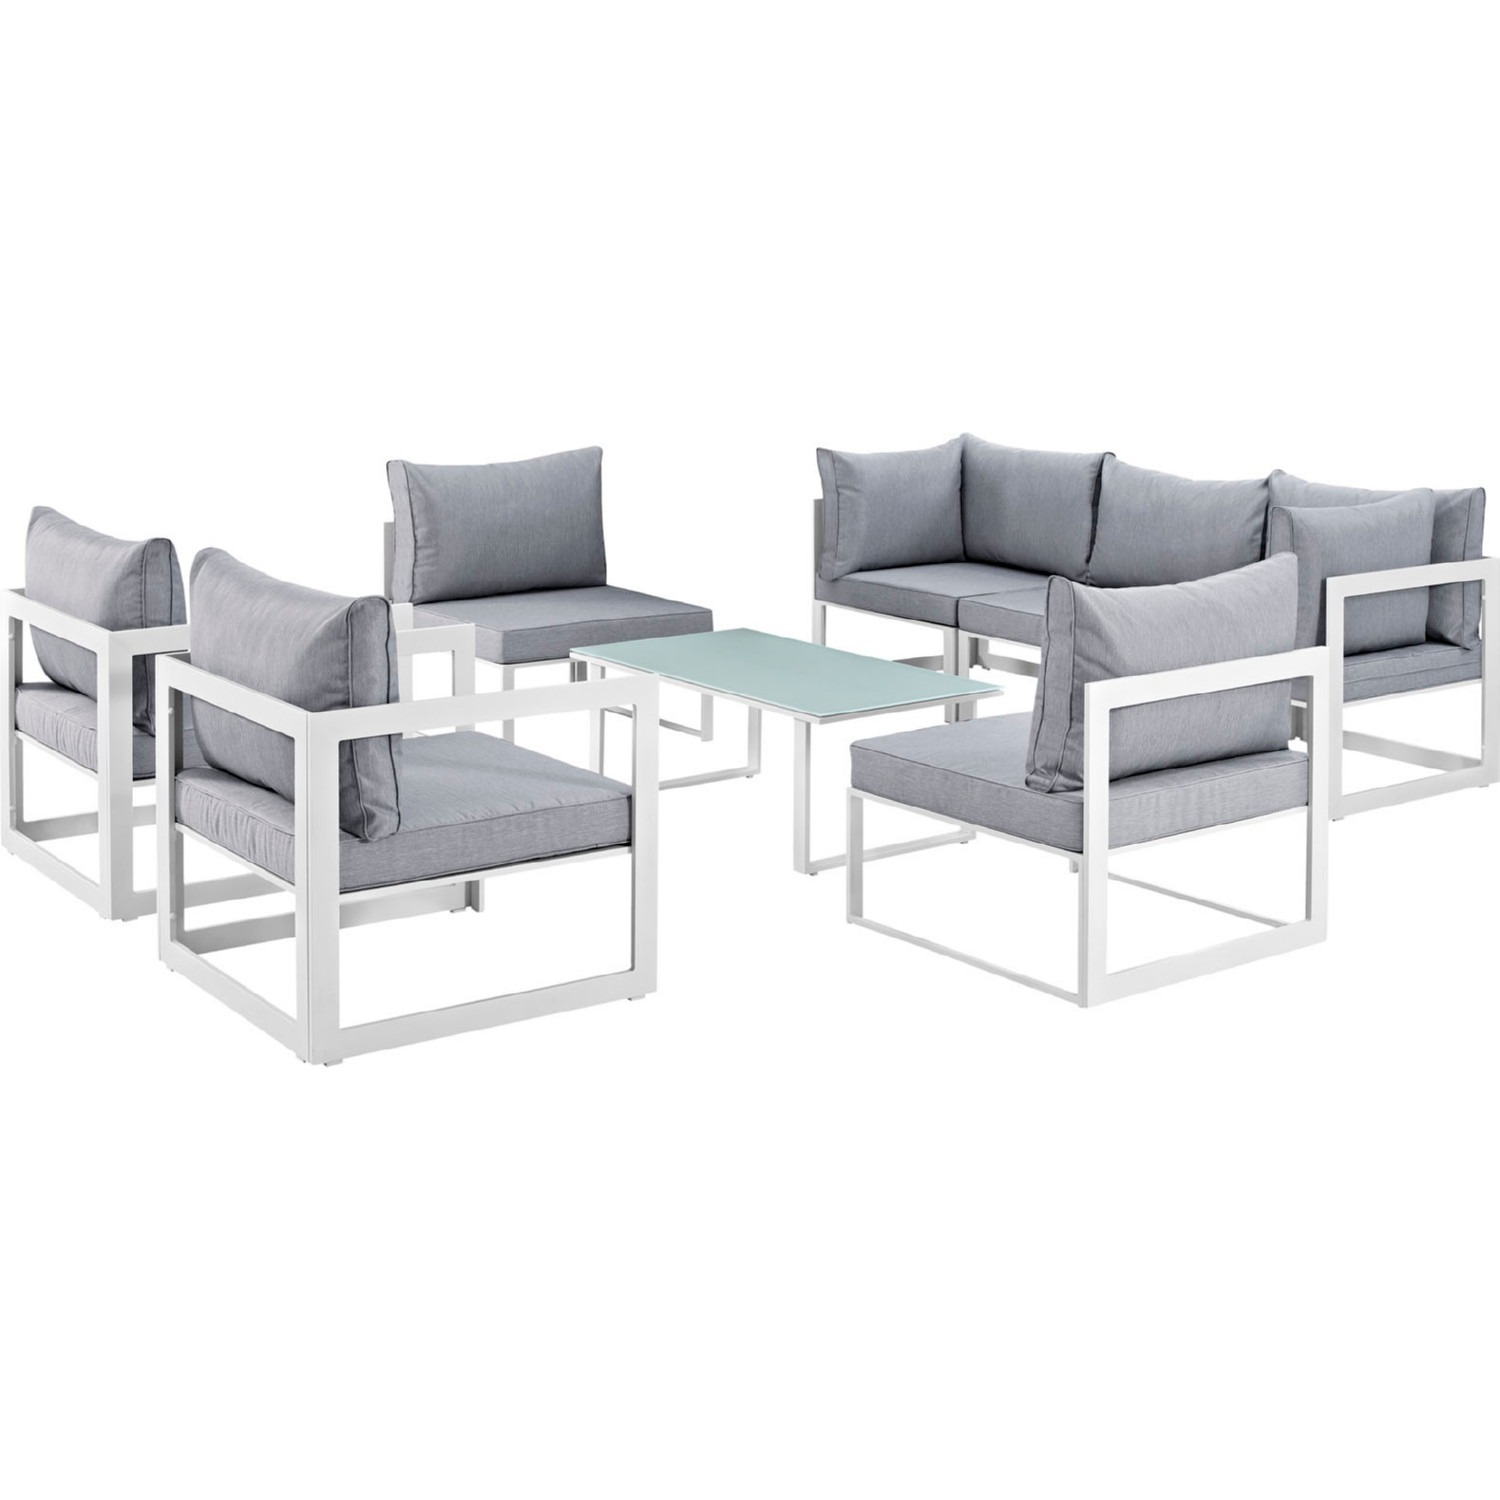 8-Piece Outdoor Sectional In Gray Fabric Finish - image-0